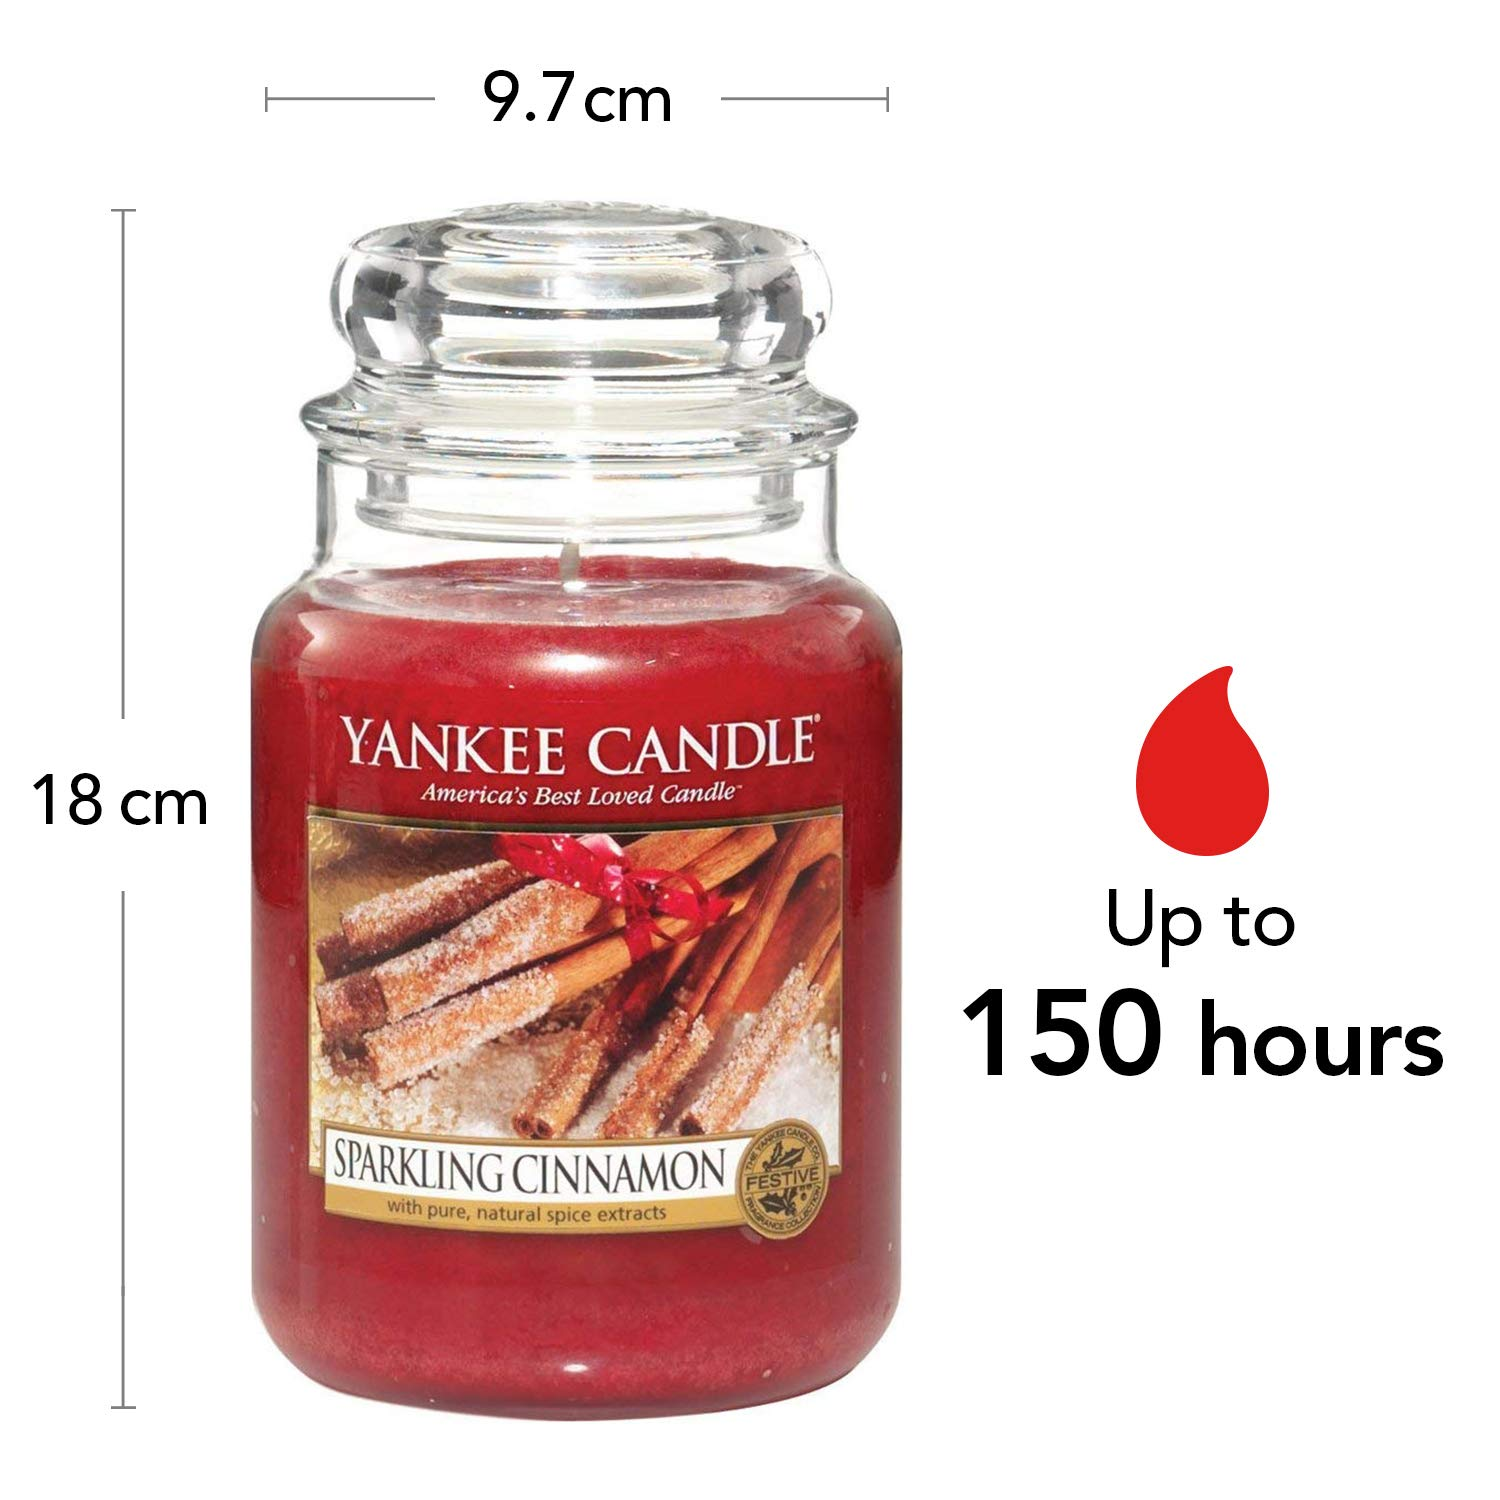 Yankee Candle bougie jarre parfumée, grande taille, Cannelle ...